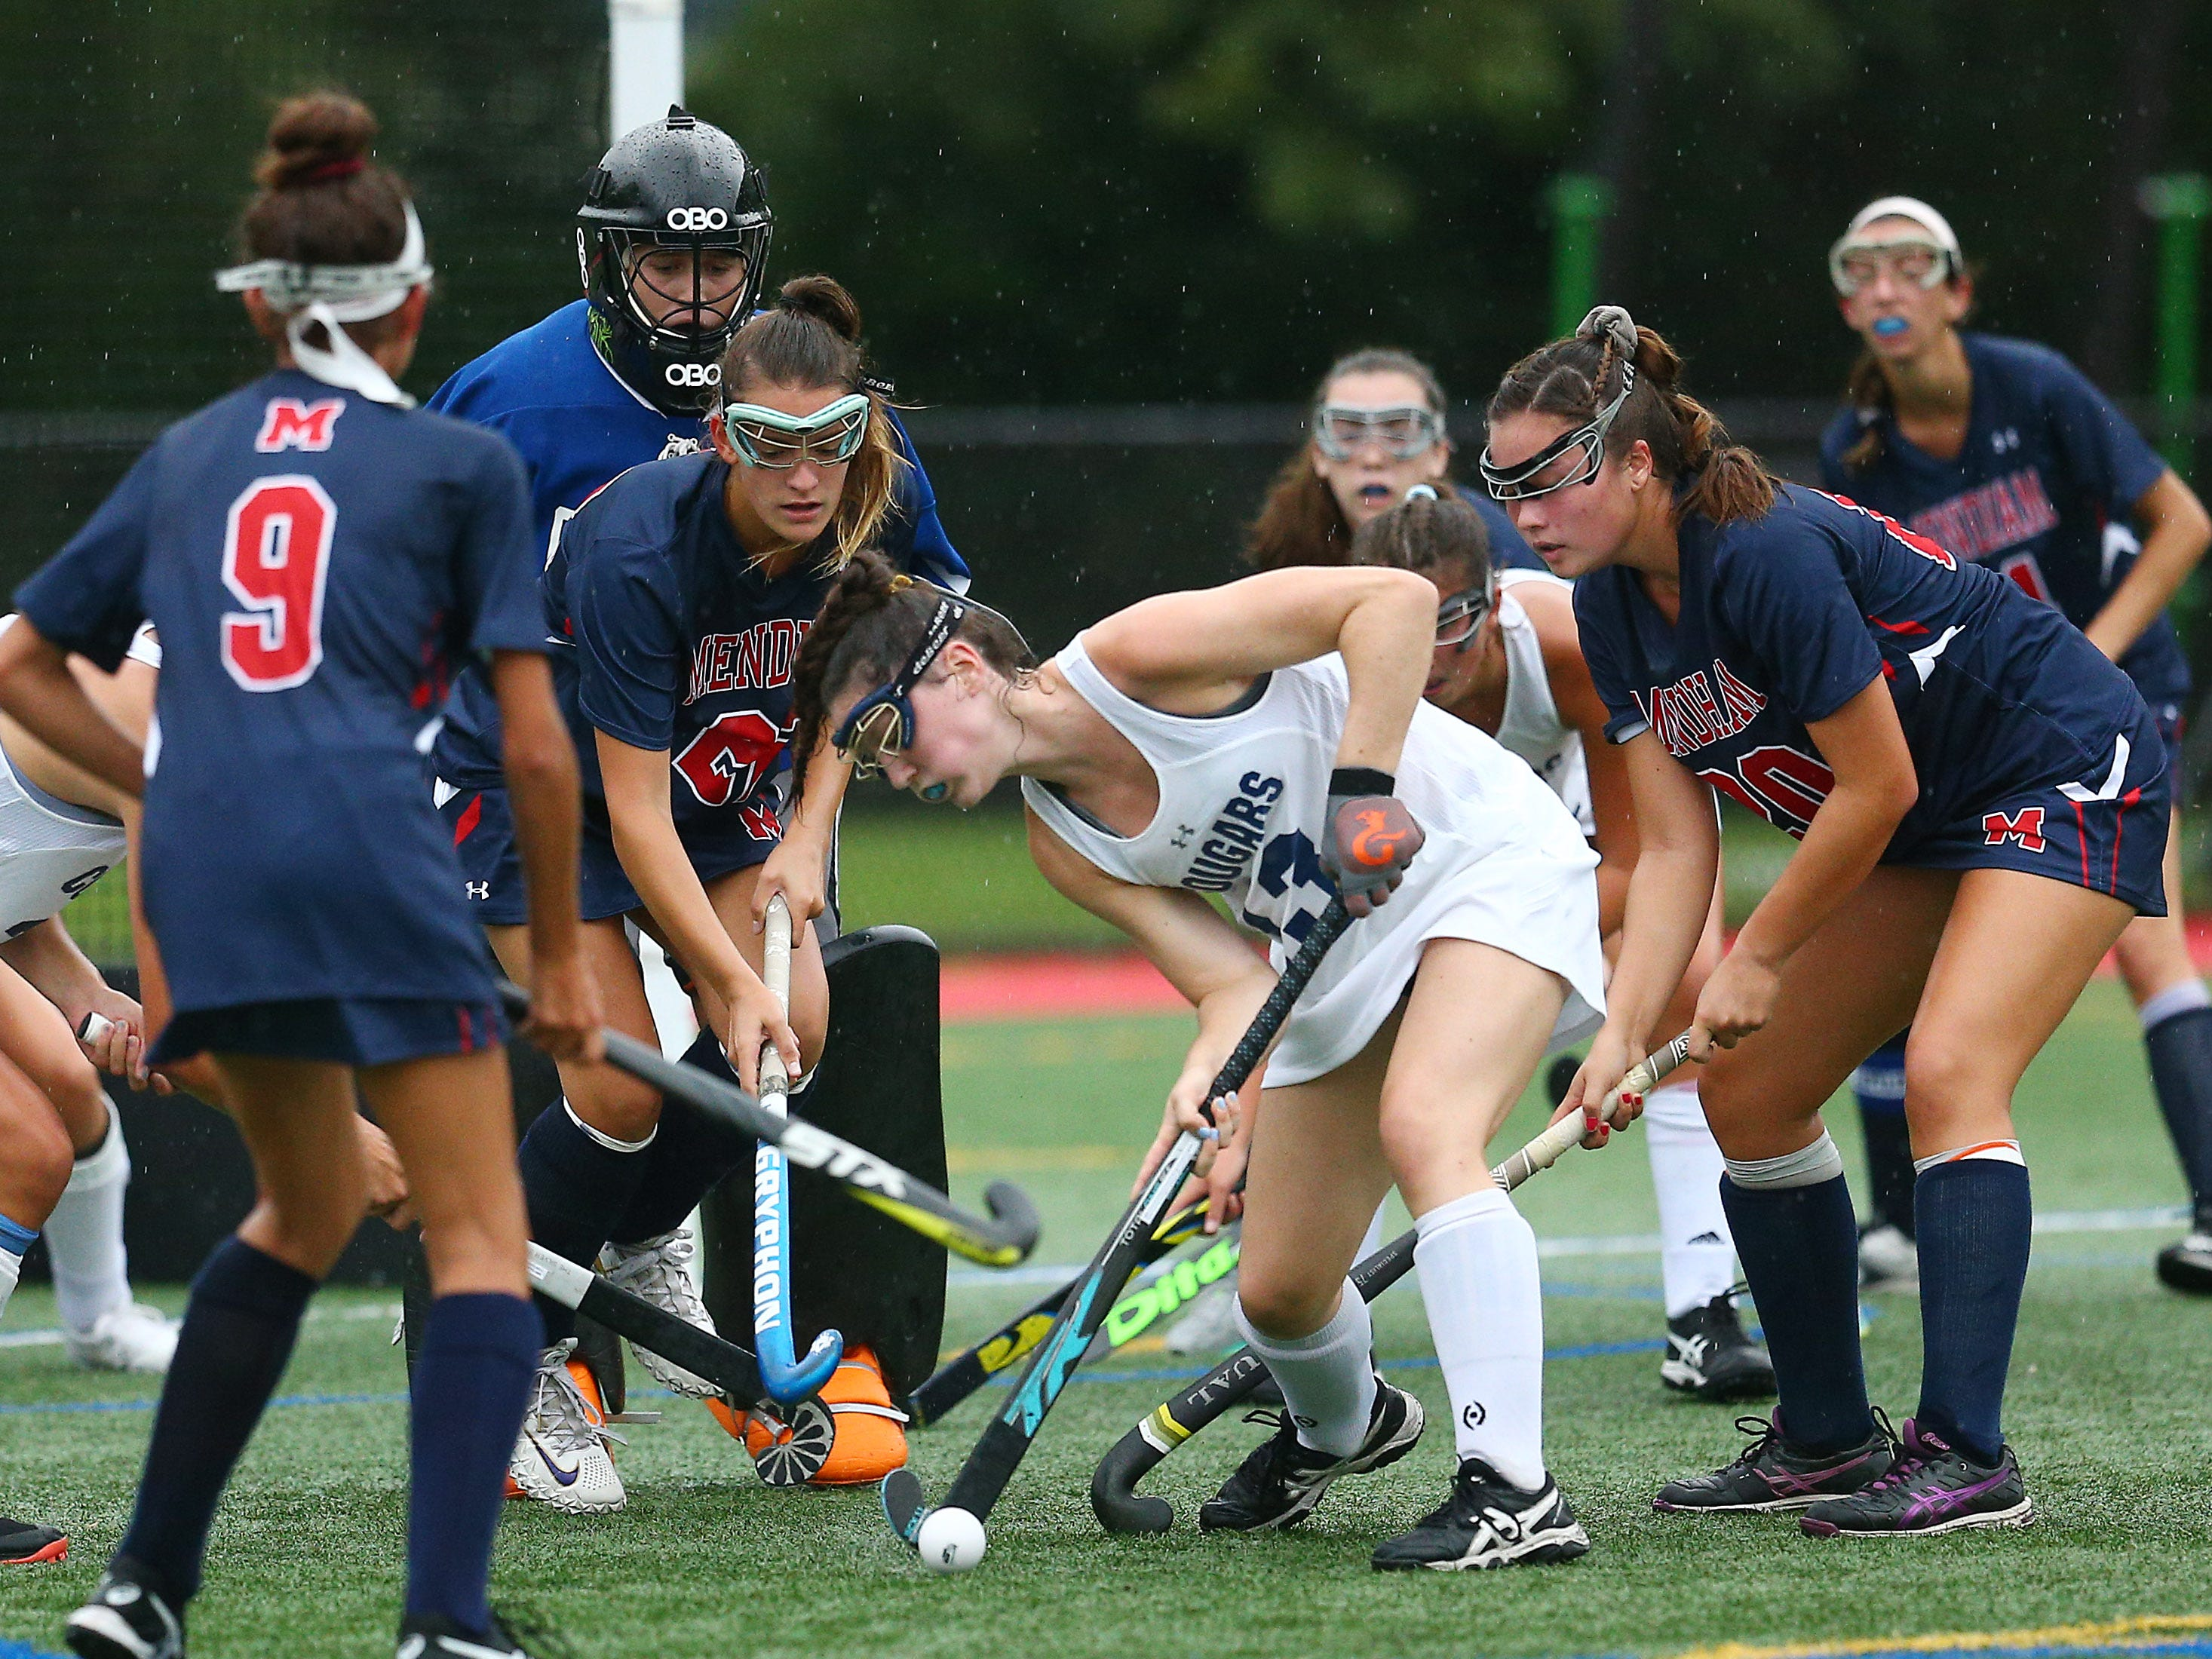 Chatham's Charlotte Hamilton clears the ball vs. Mendham during their NJAC-American field hockey game at Haas Field in Chatham. September 12, 2018, Chatham, NJ